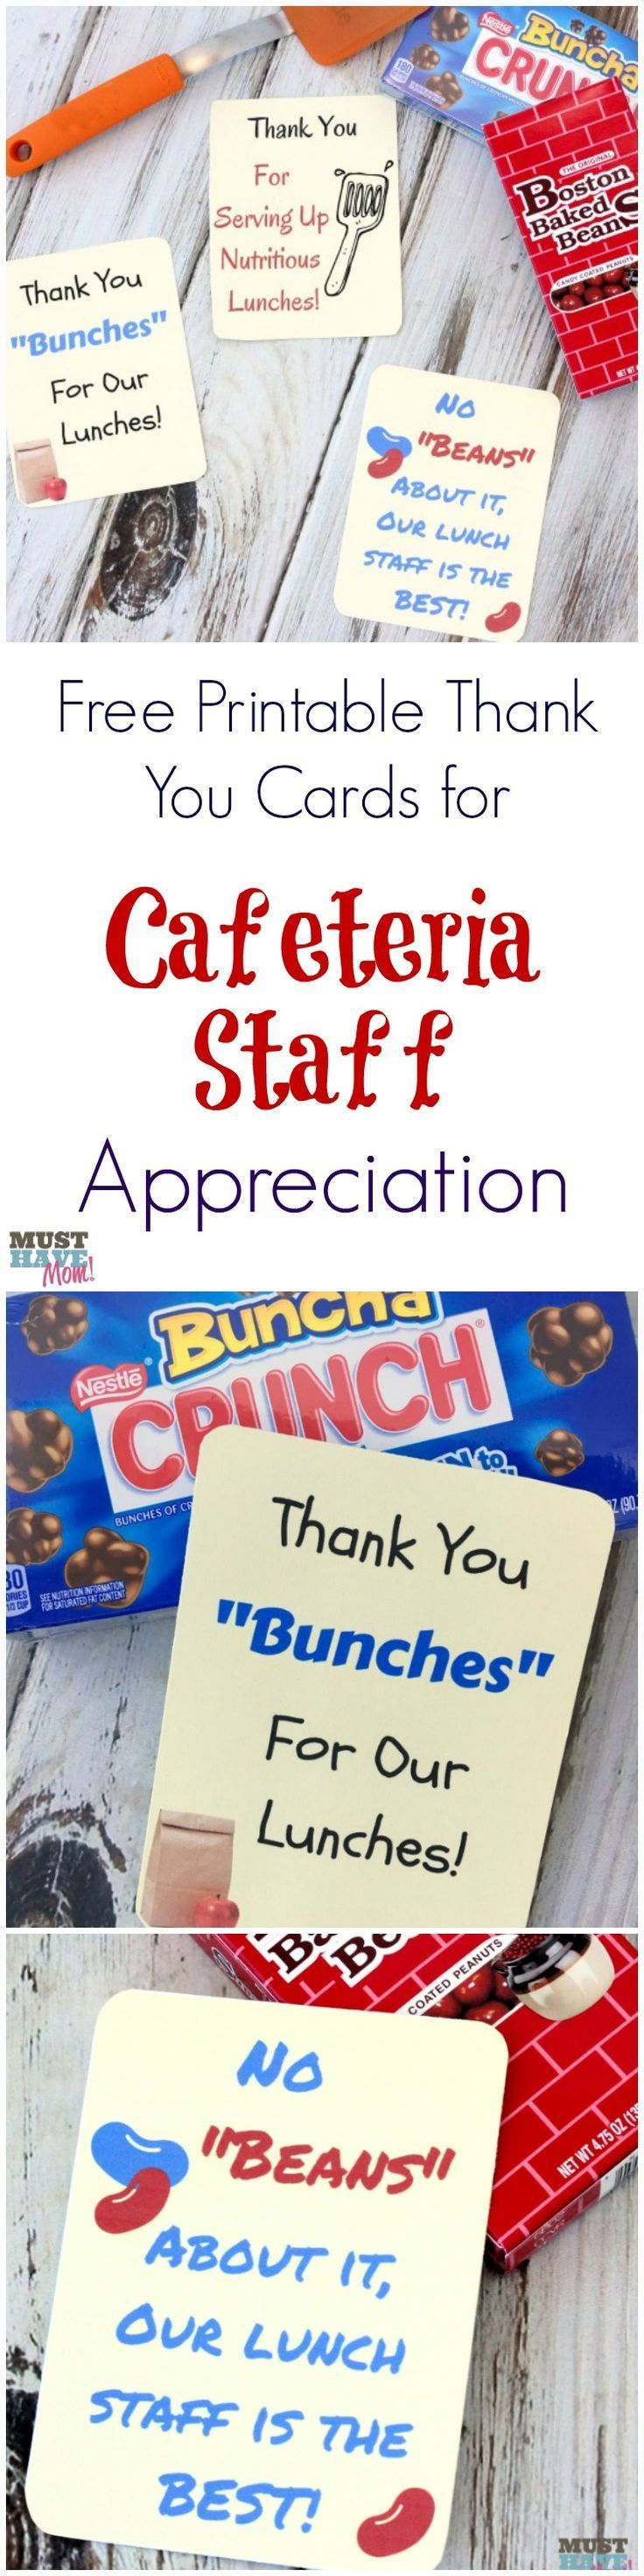 Free printable thank you cards for cafeteria staff appreciation! Celebrate school lunch hero day and thank those that provided school lunches for your child each day!